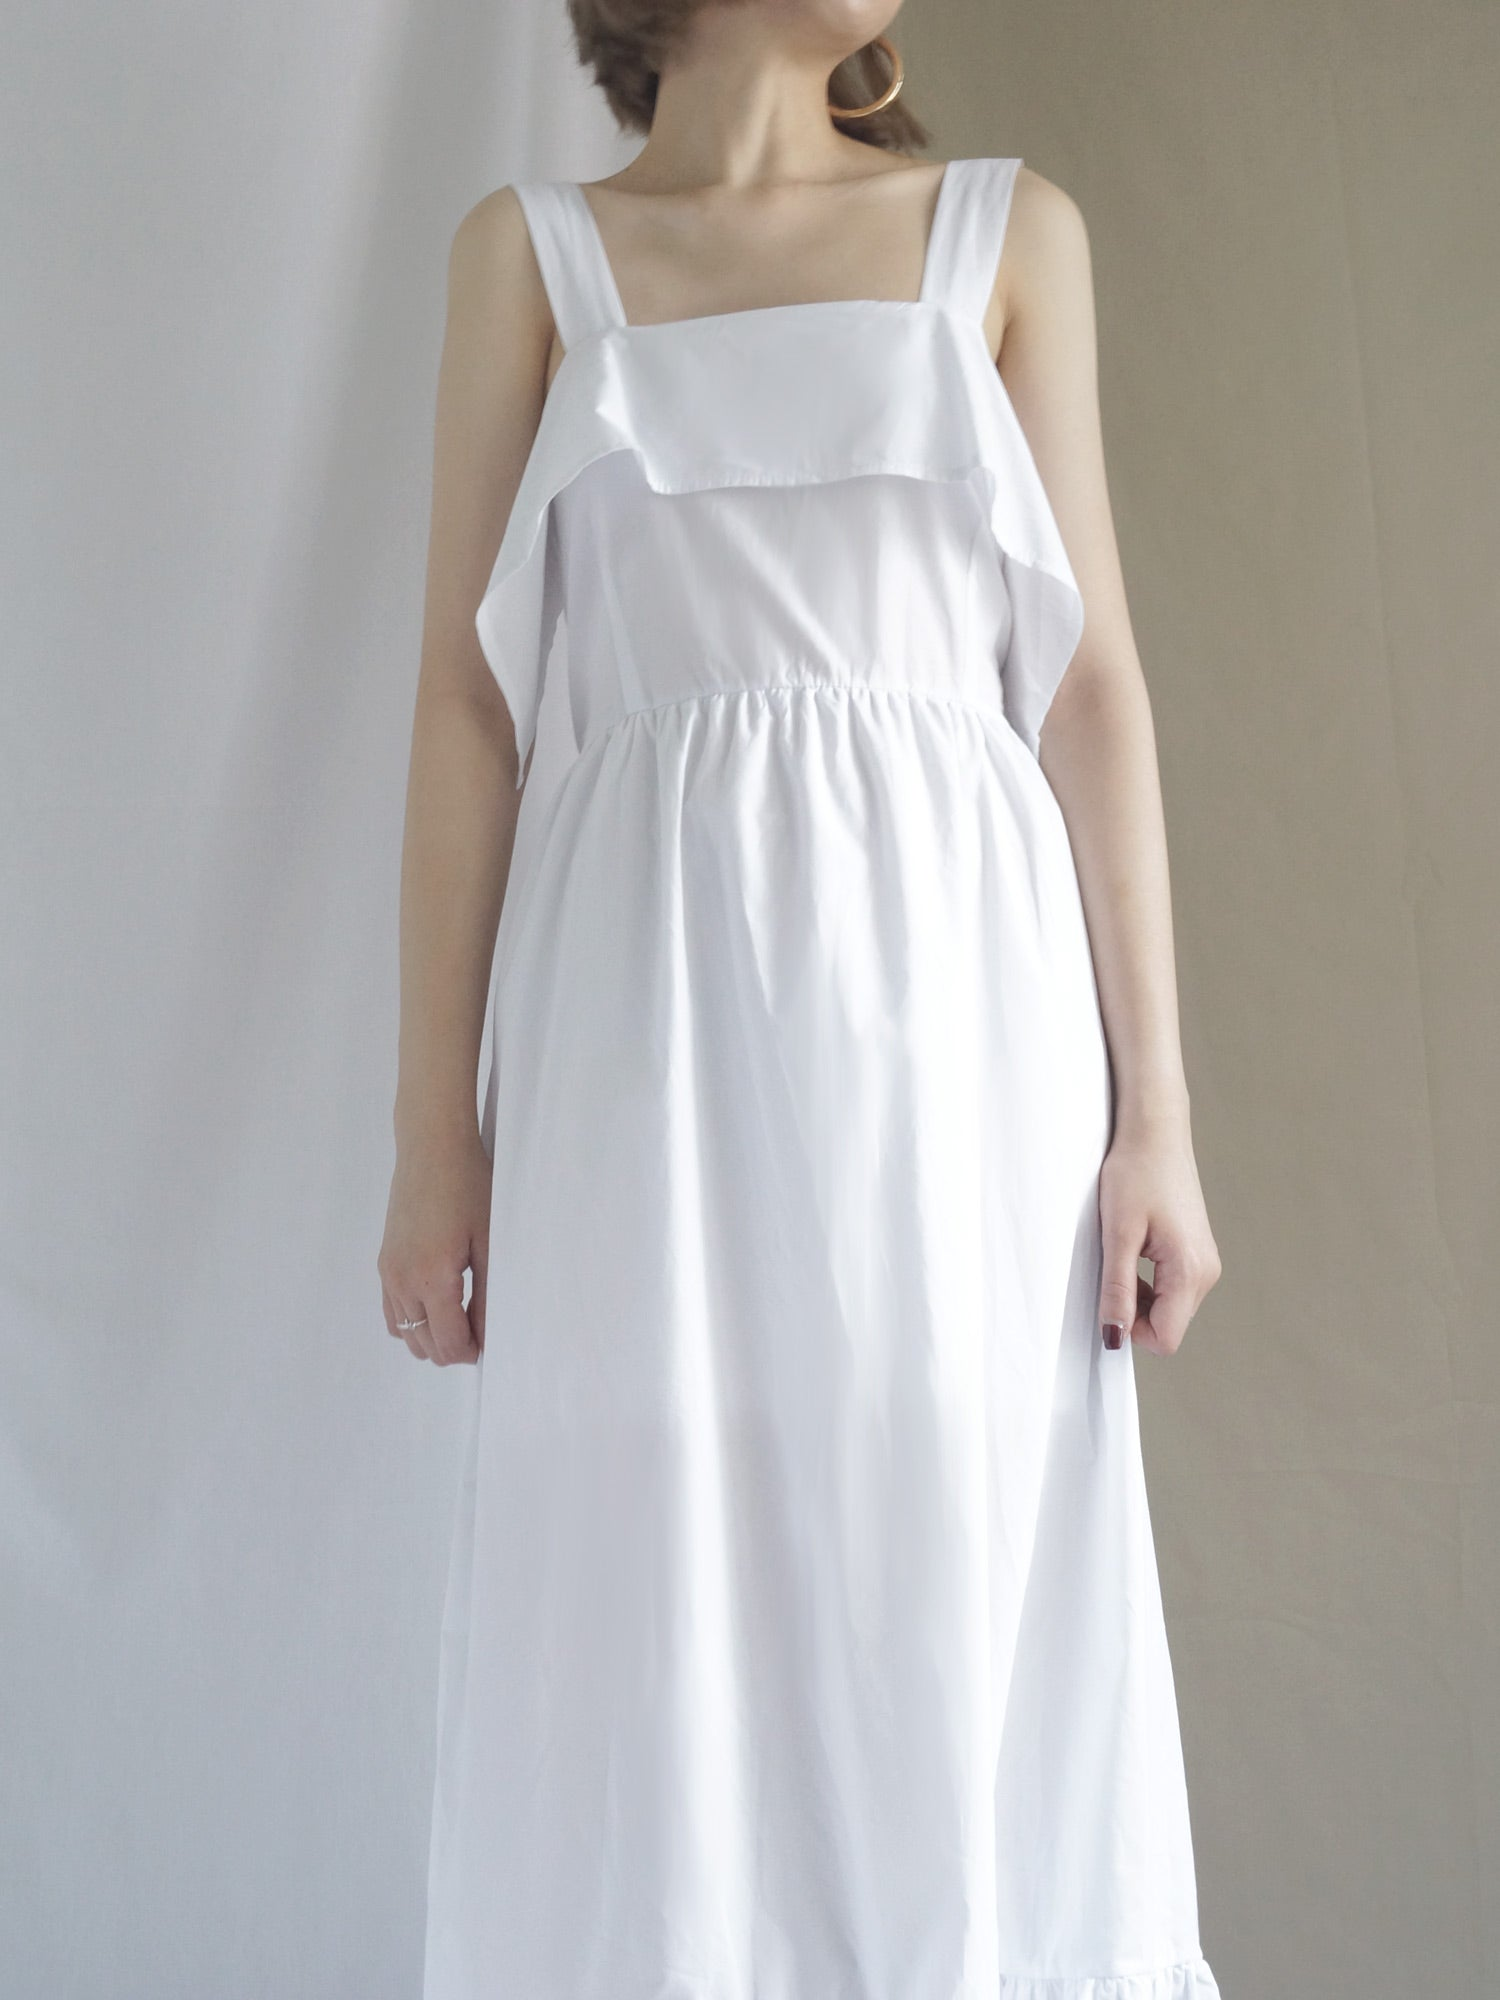 Poppy Ribbon Dress - White - Gabi The Label